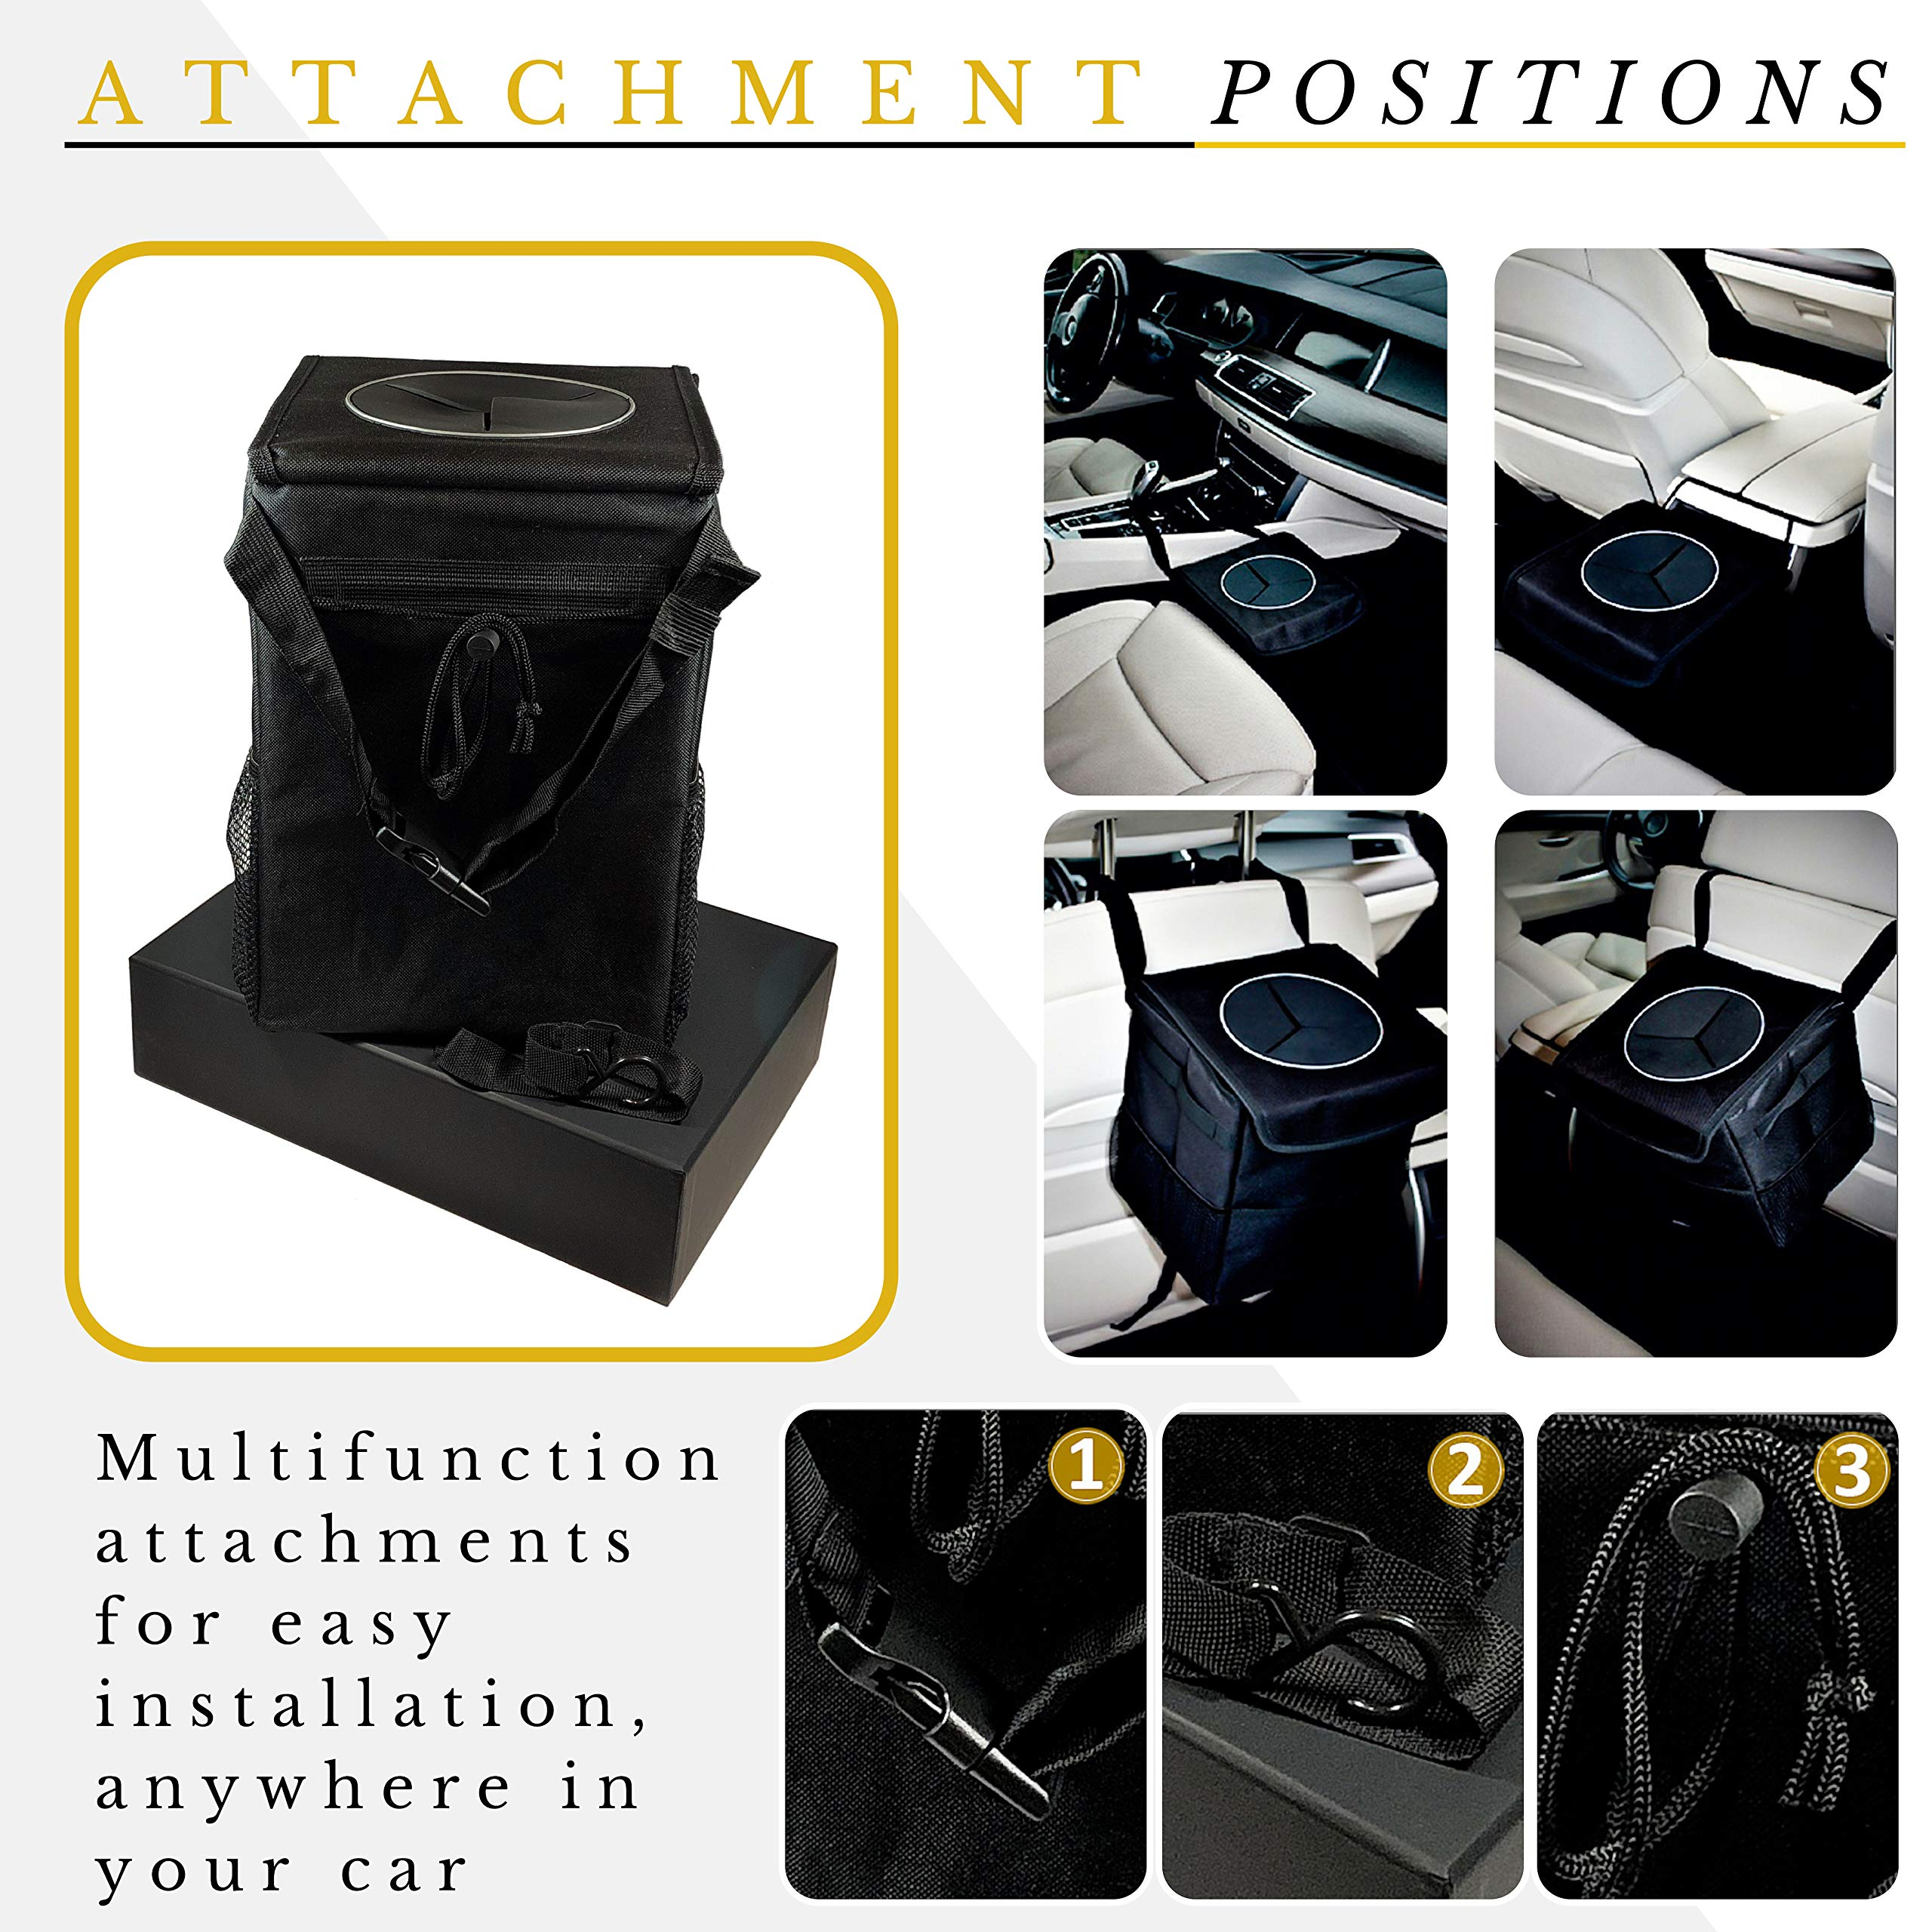 Car Trash Can - The Luxury Edition. No-Smell, Premium Leak Proof Construction & Watertight Liner Won't Cave, Spill, Tip or Contaminate Vehicle Guaranteed | Cleaning Cloth & 30 Disposable Liners by MB Innovations Group (Image #7)